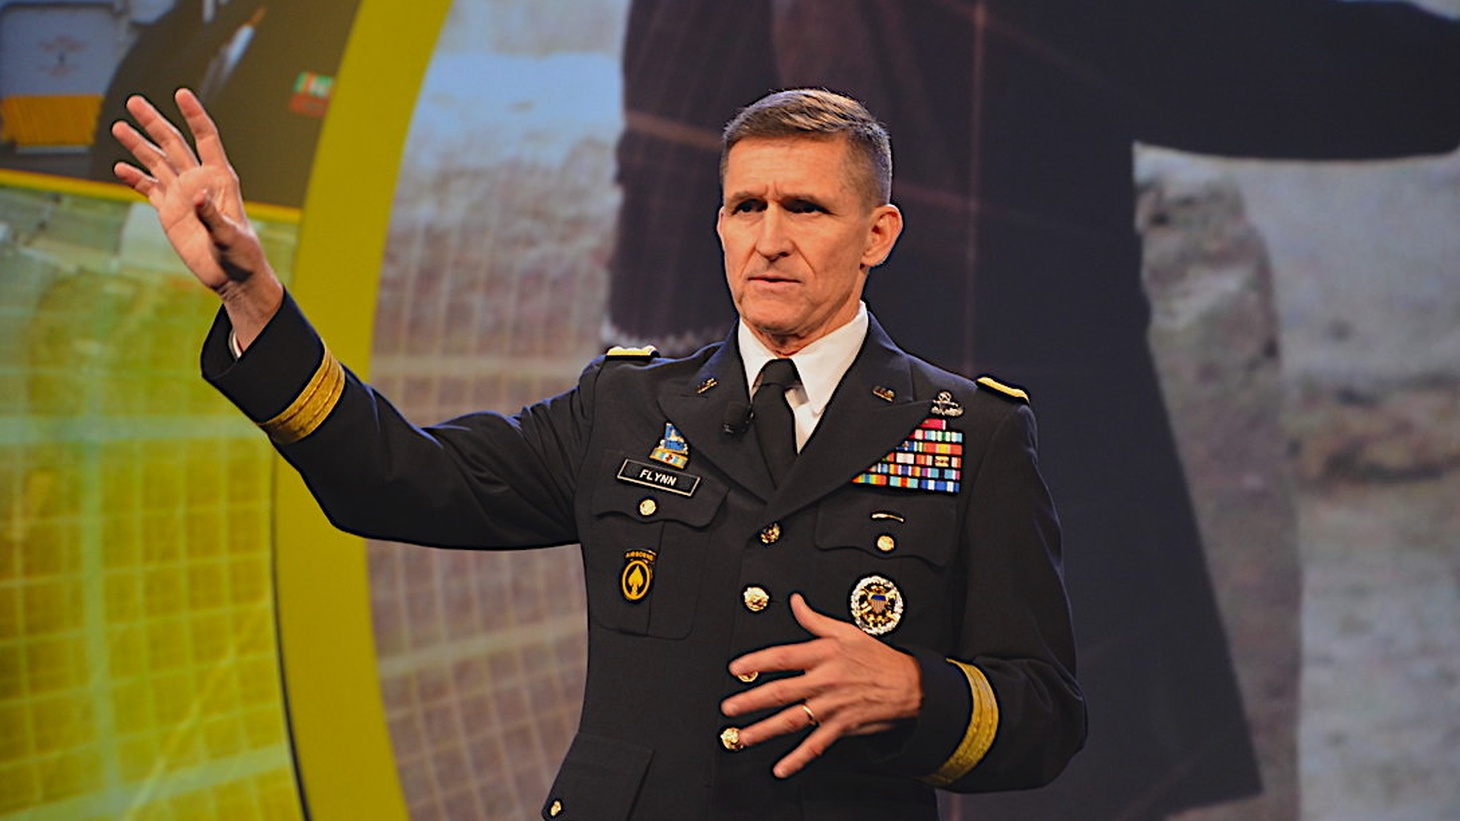 Former National Security Advisor Michael Flynn in 2012.